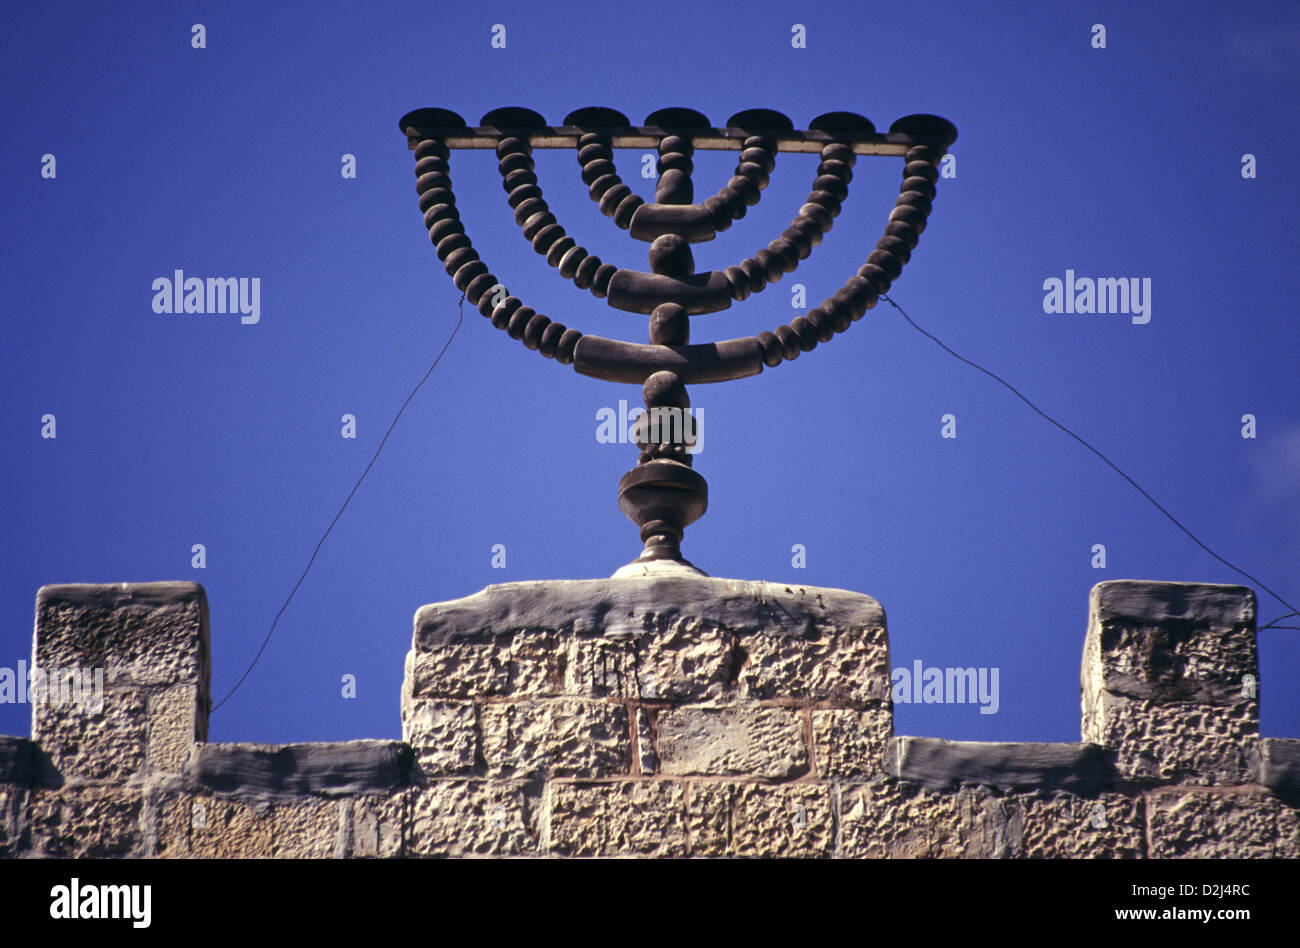 The Menorah A Seven Branched Candelabra One Of The Symbols Of Stock